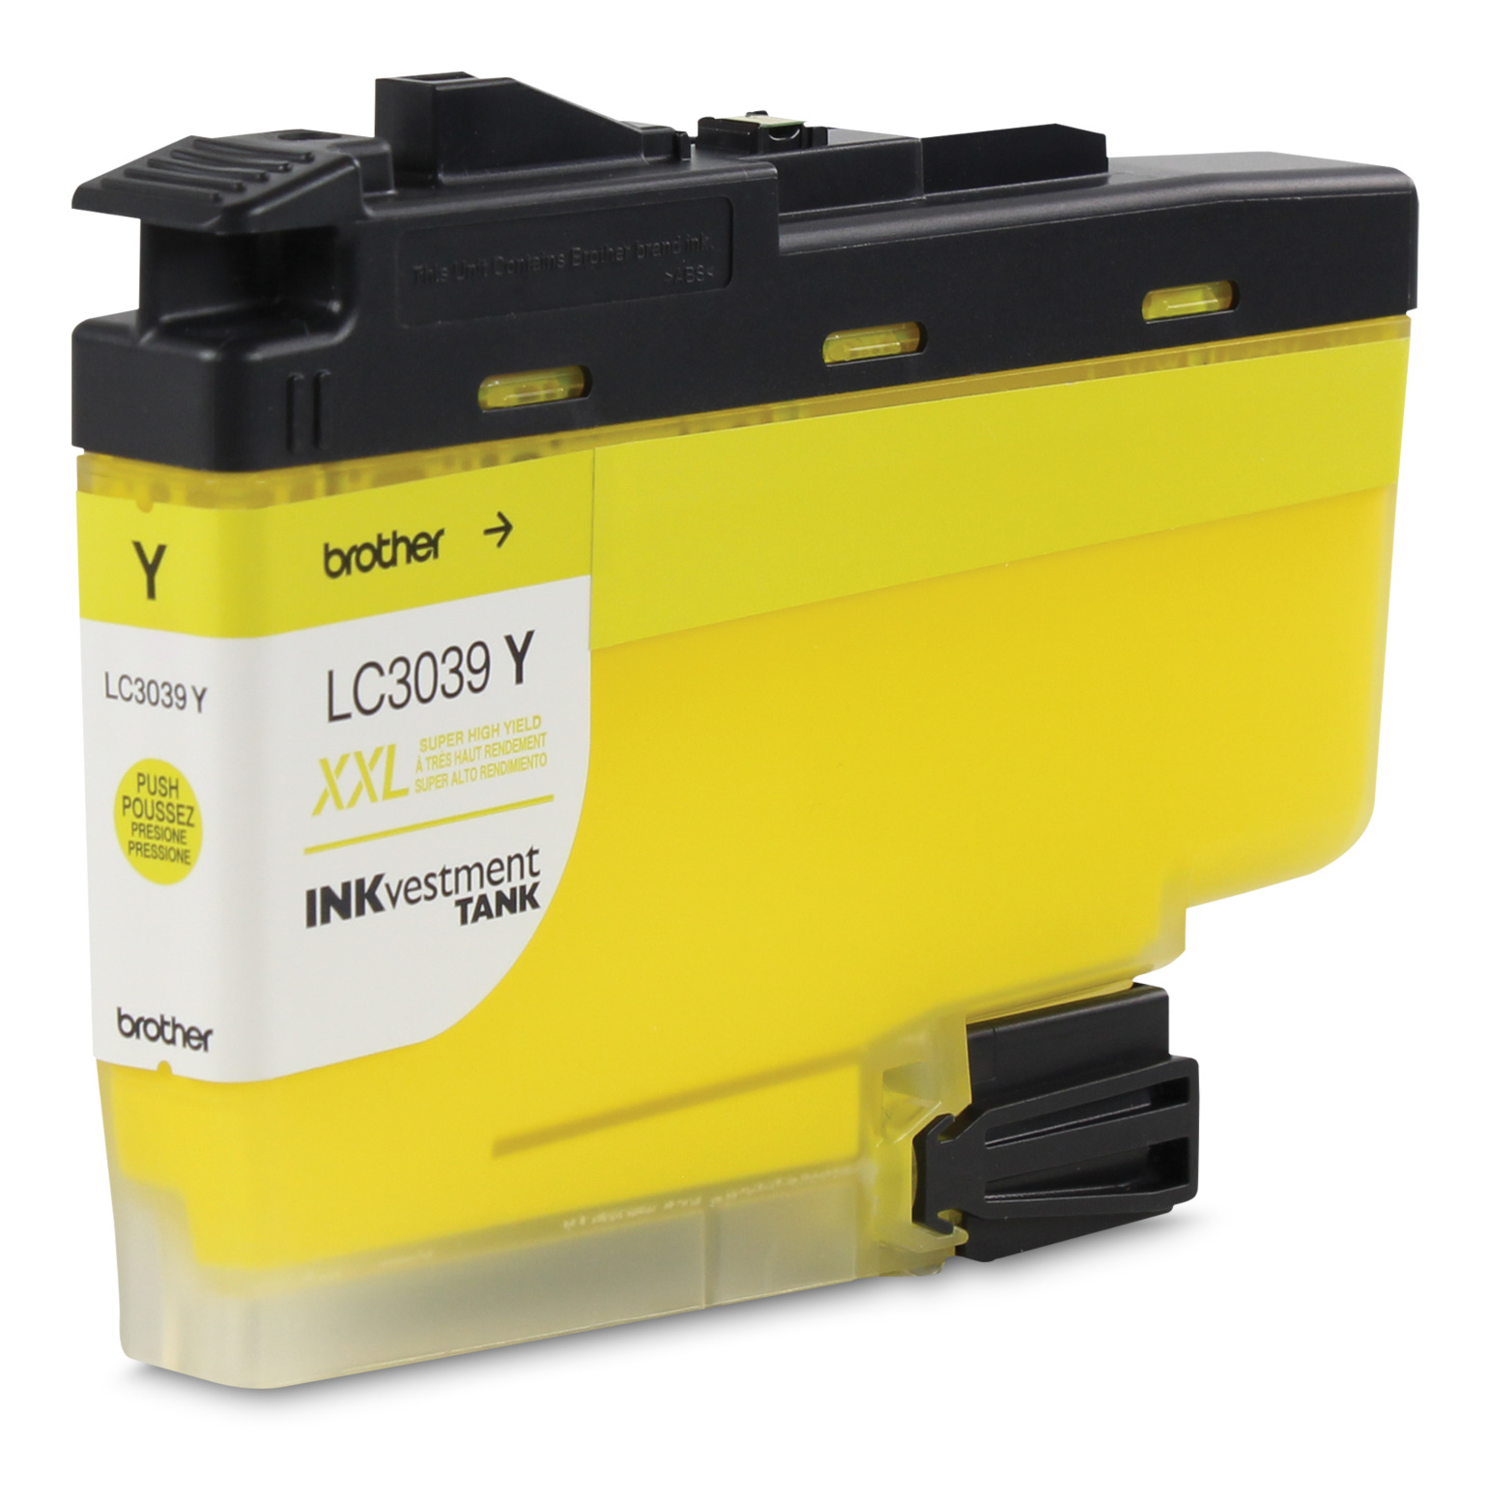 Brother Ink Lc3039Y Xxl Yellow